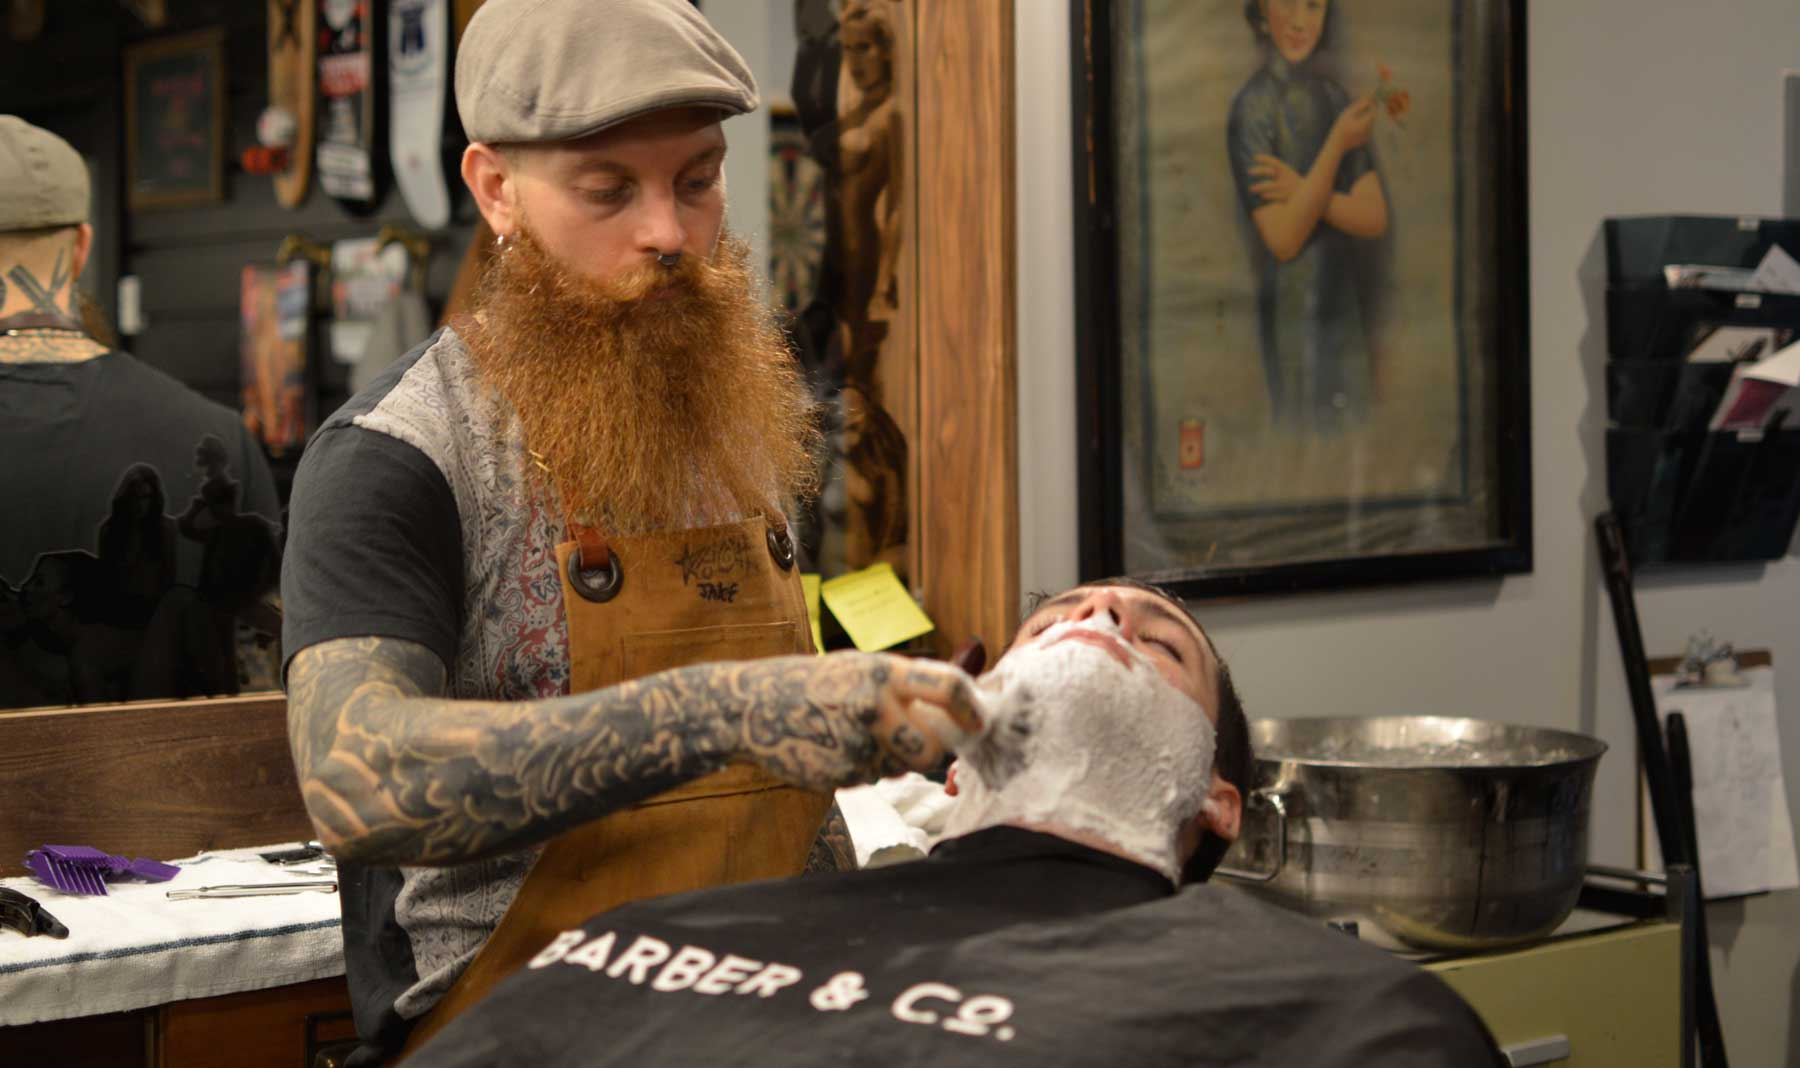 Chris getting a close shave @ Barber & Co., Vancouver, BC